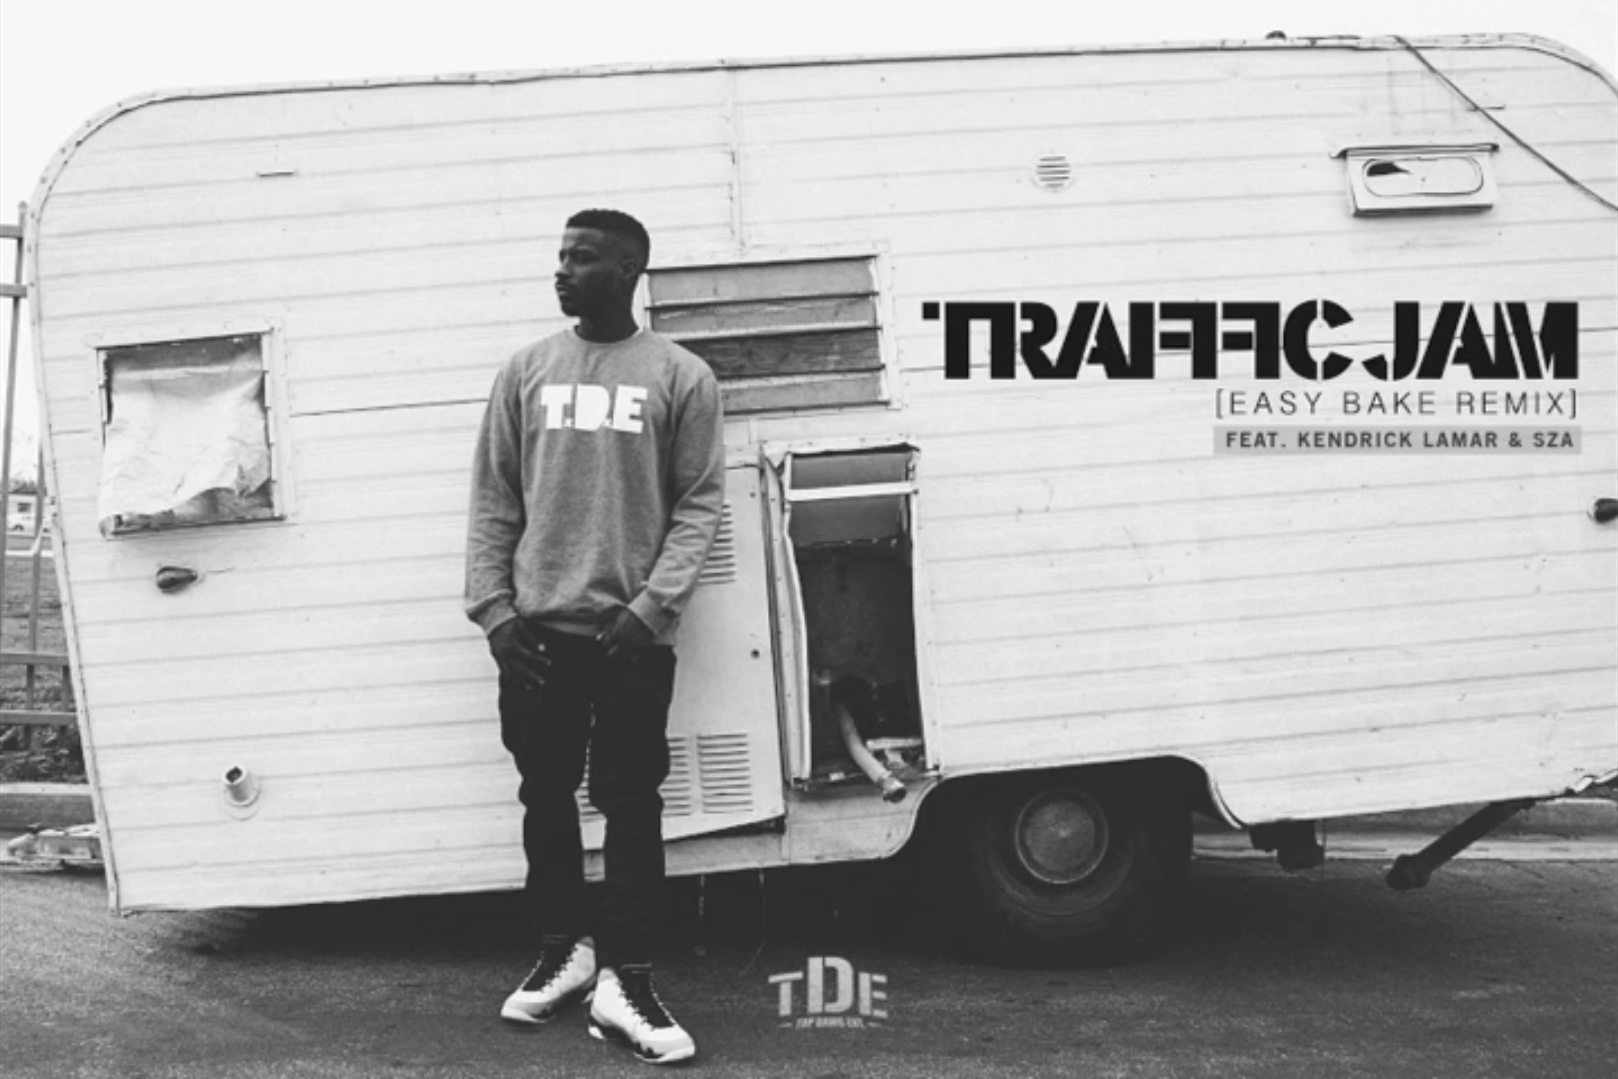 Jay Rock feat Kendrick Lamar : le duo infernal se retrouve sur « Traffic Jam »